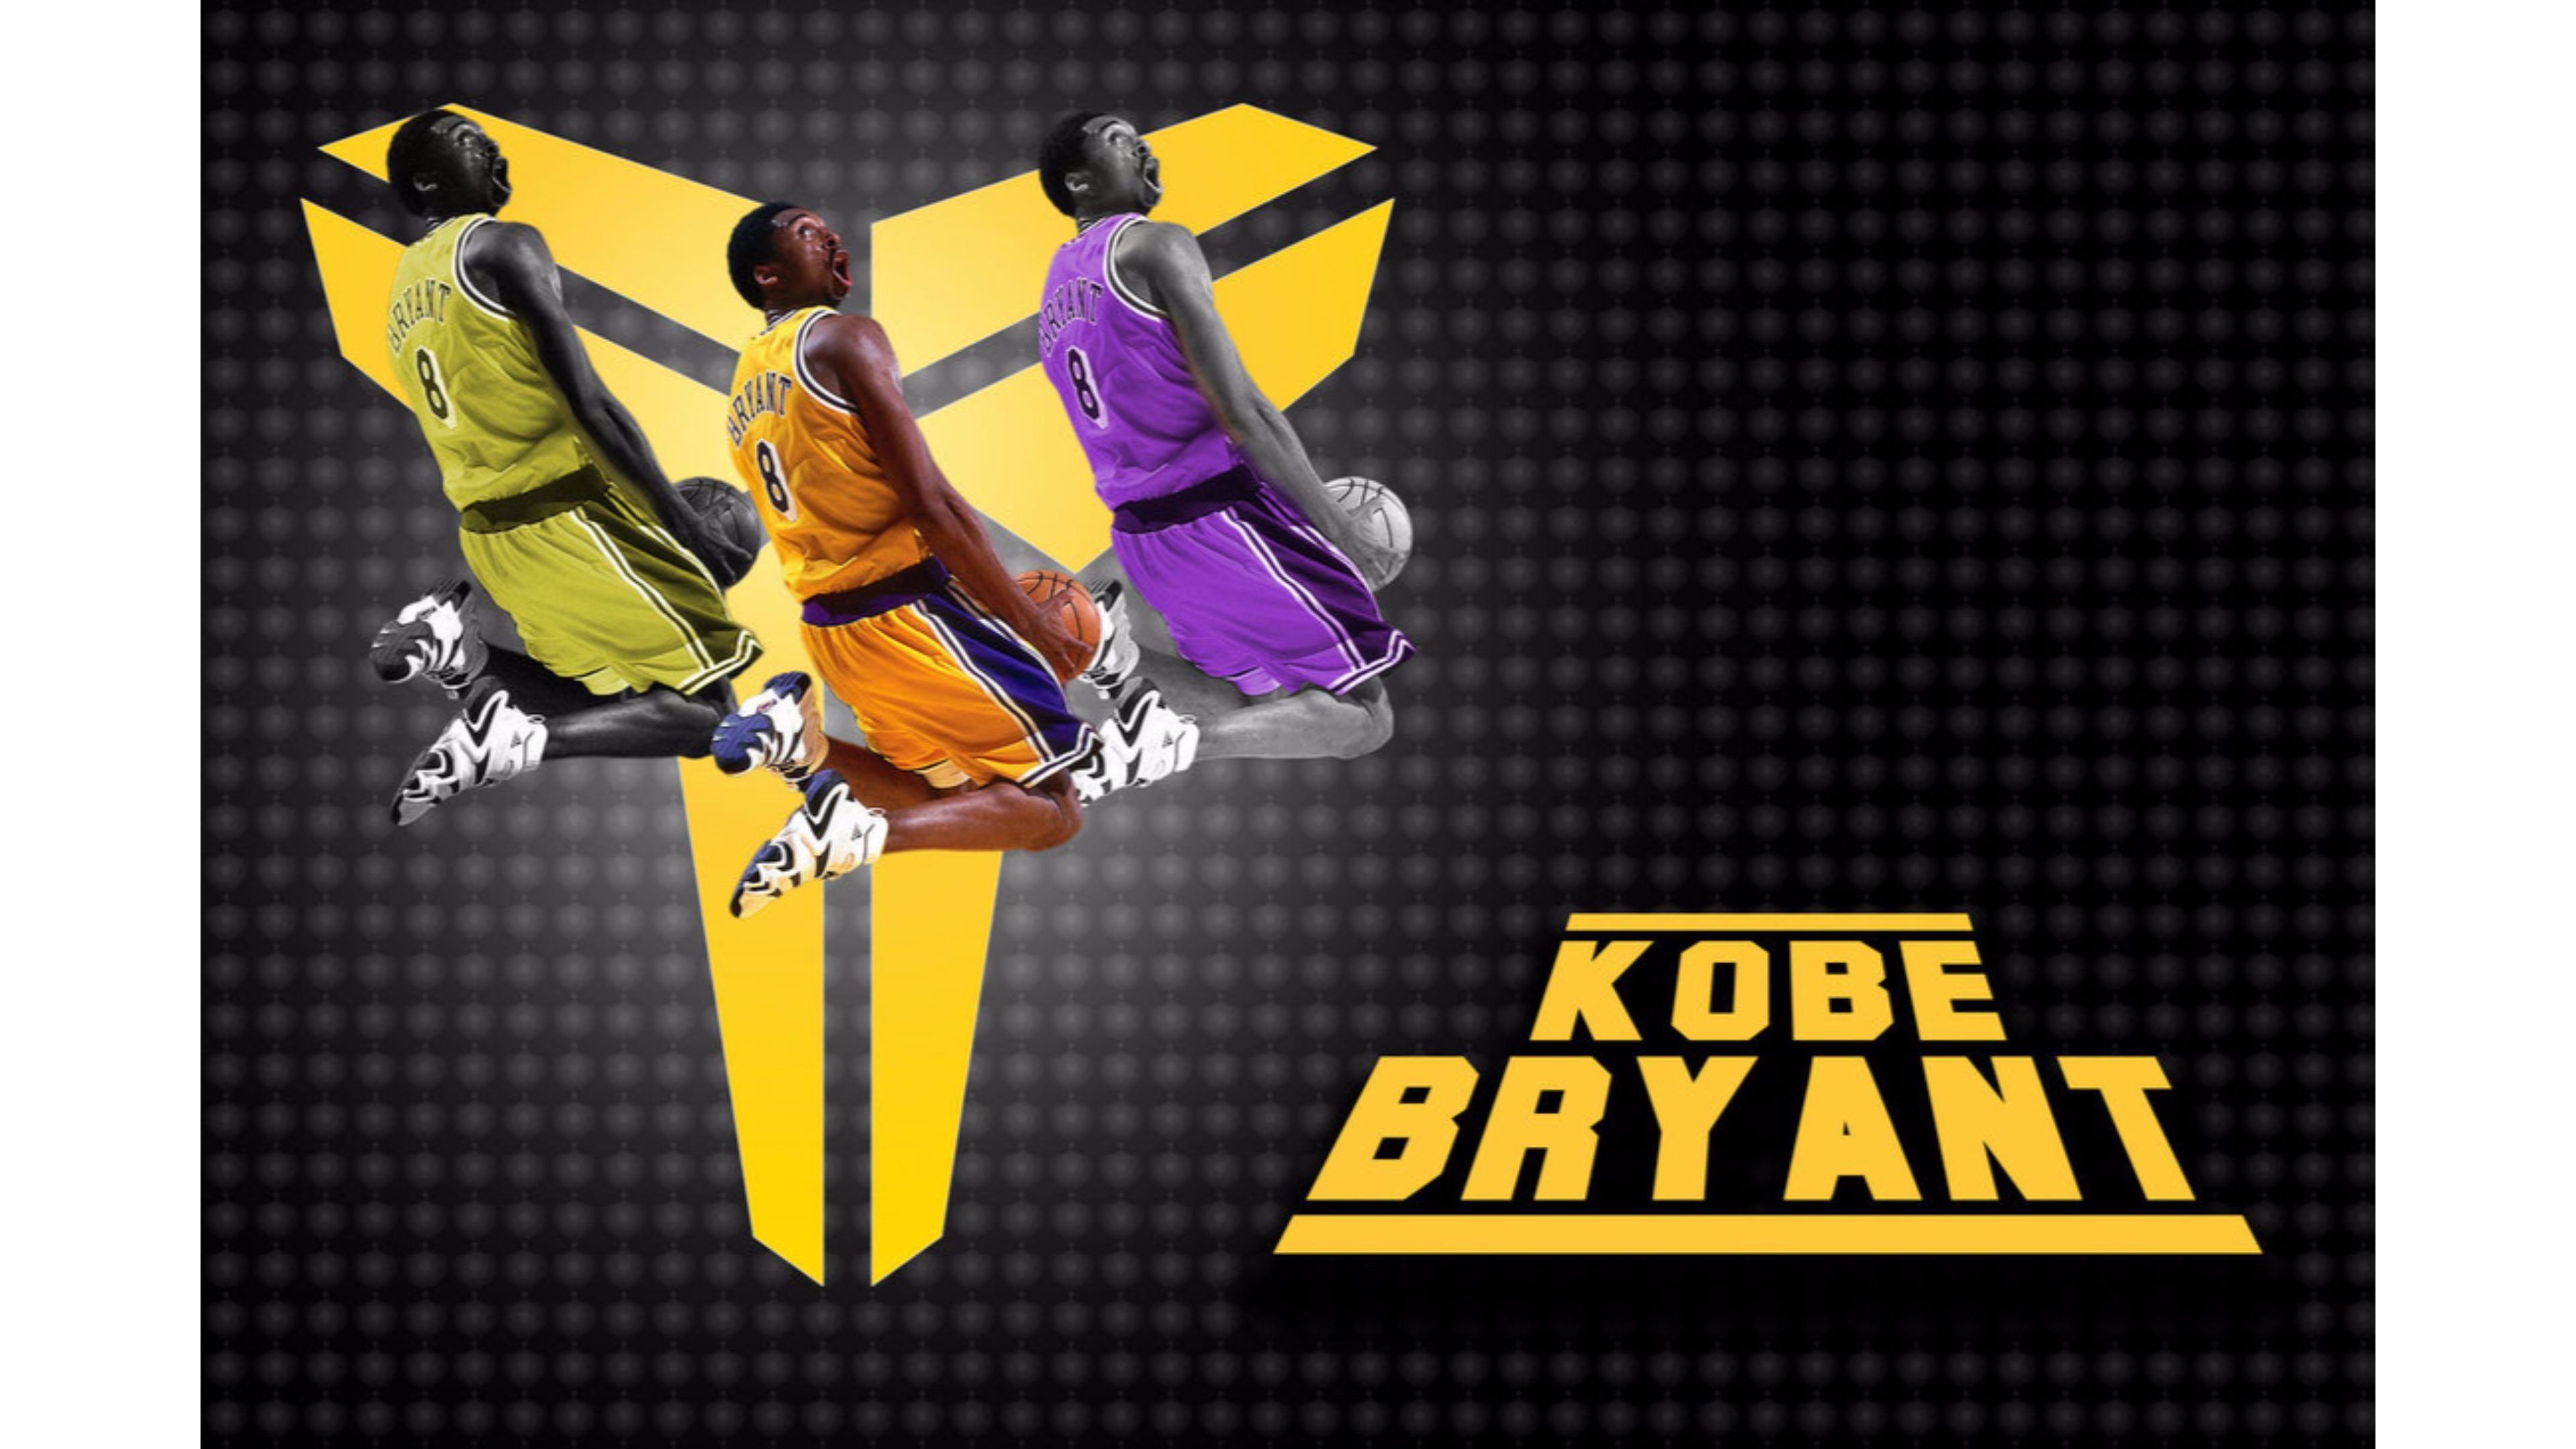 New Kobe Bryant wallpaper